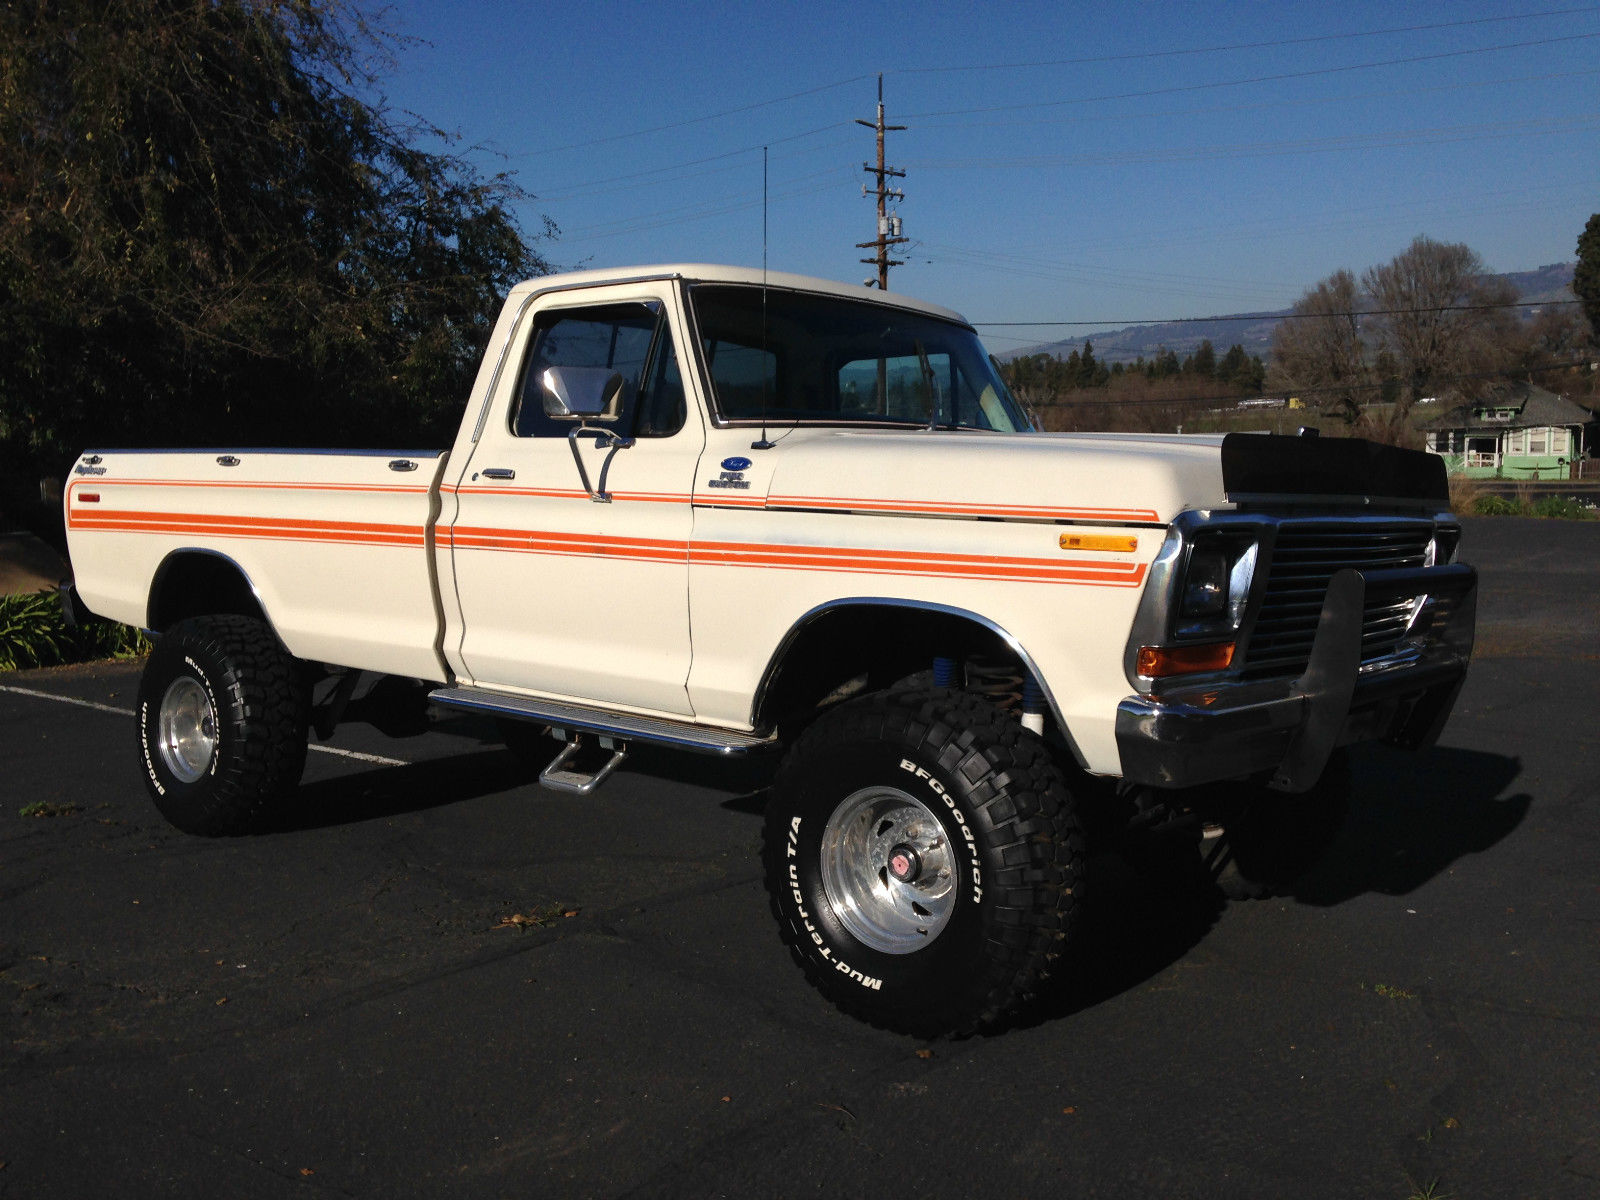 hight resolution of 1979 ford f 150 4x4 explorer lifted longbed pickup very nice